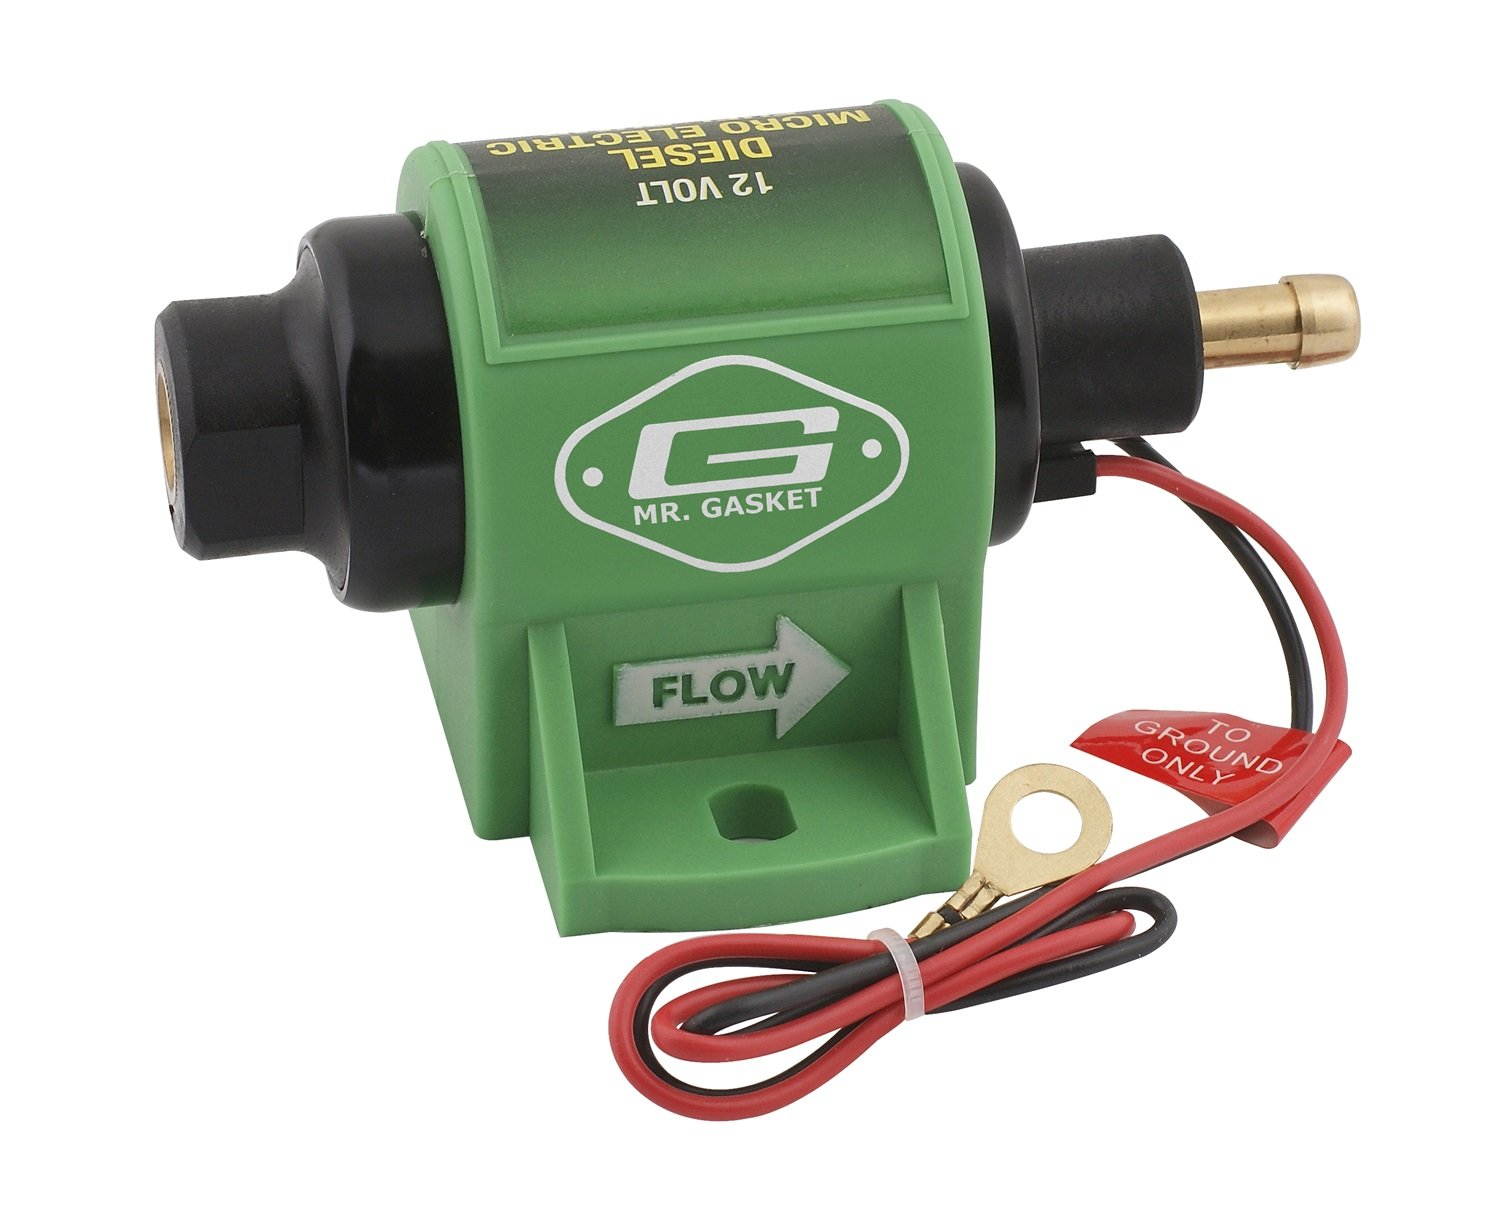 Mr. Gasket 12D Micro Electric Diesel Fuel Pump Mr Gasket